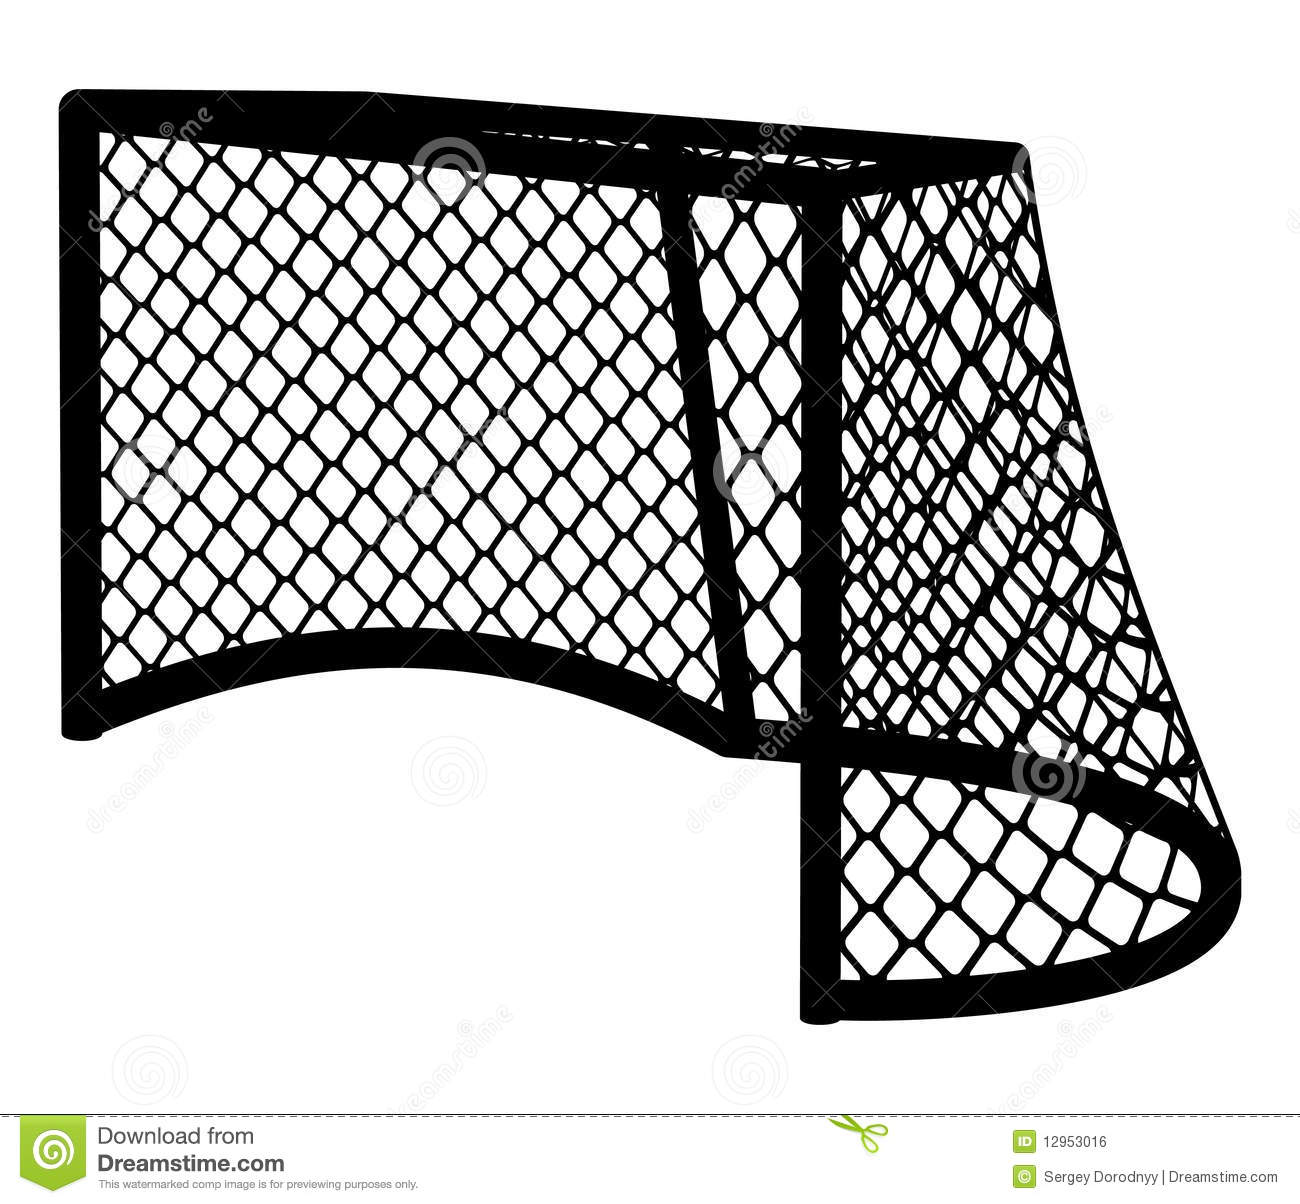 Hockey Goal Silhouette Royalty Free Stock Image